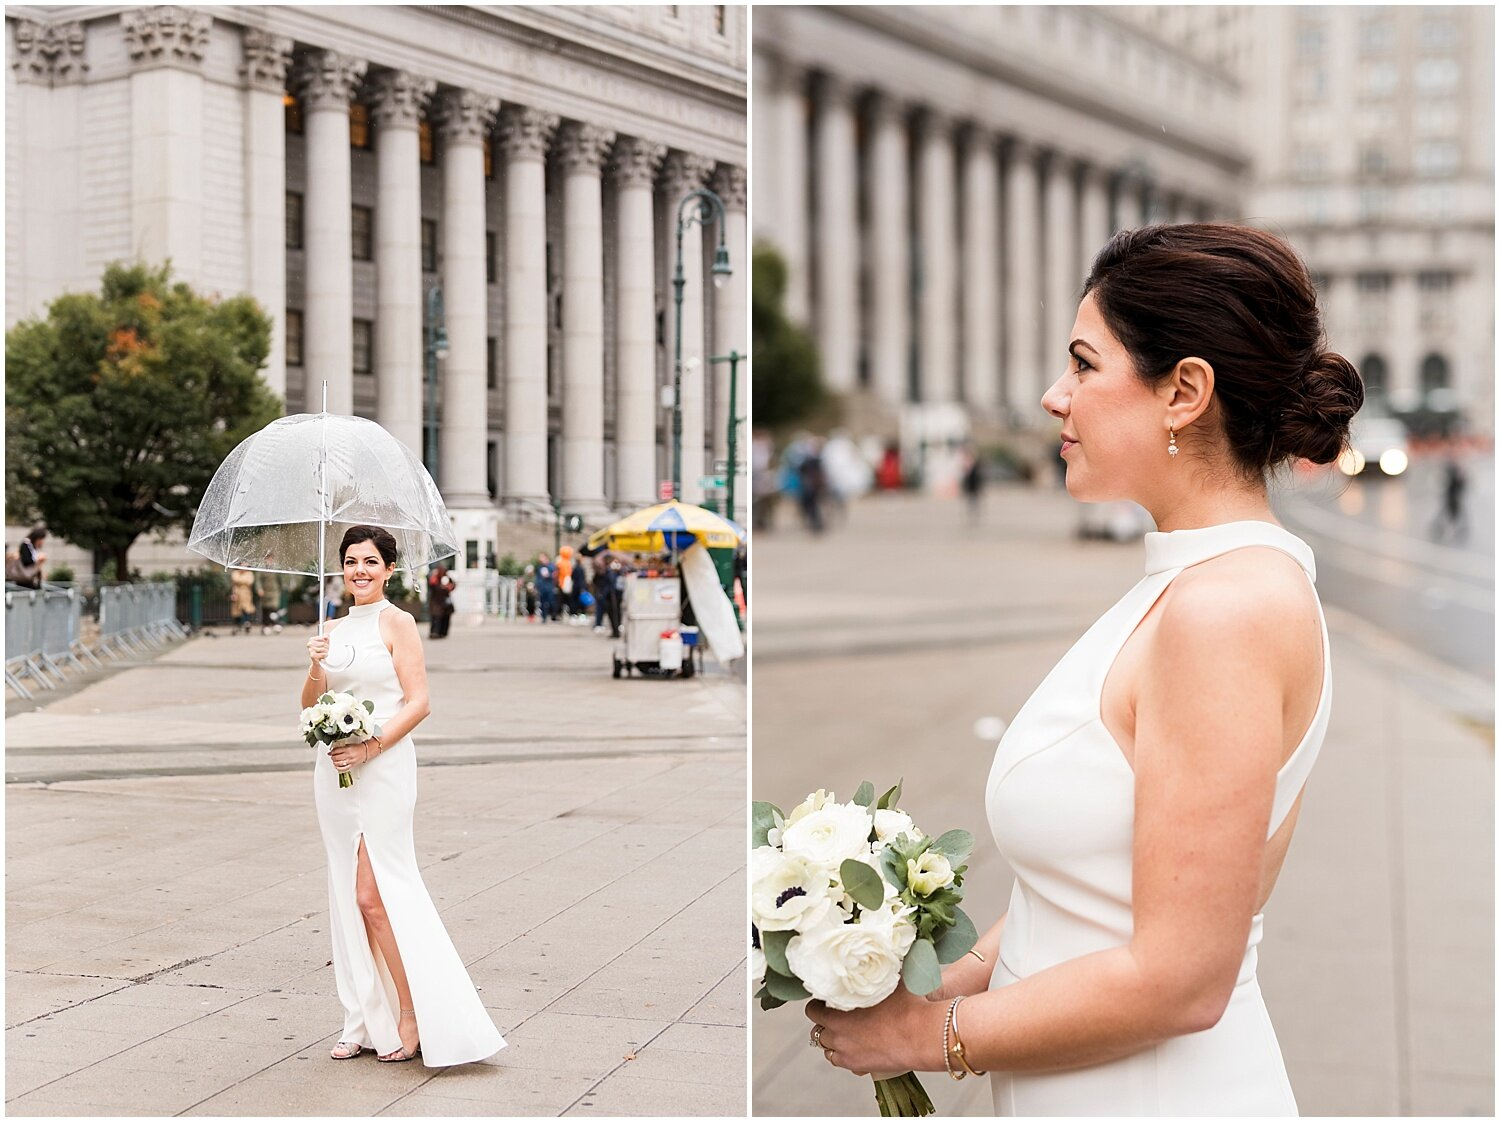 NYC-City-Hall-Courthouse-Elopement-Photographer-Apollo-Fields-025.jpg